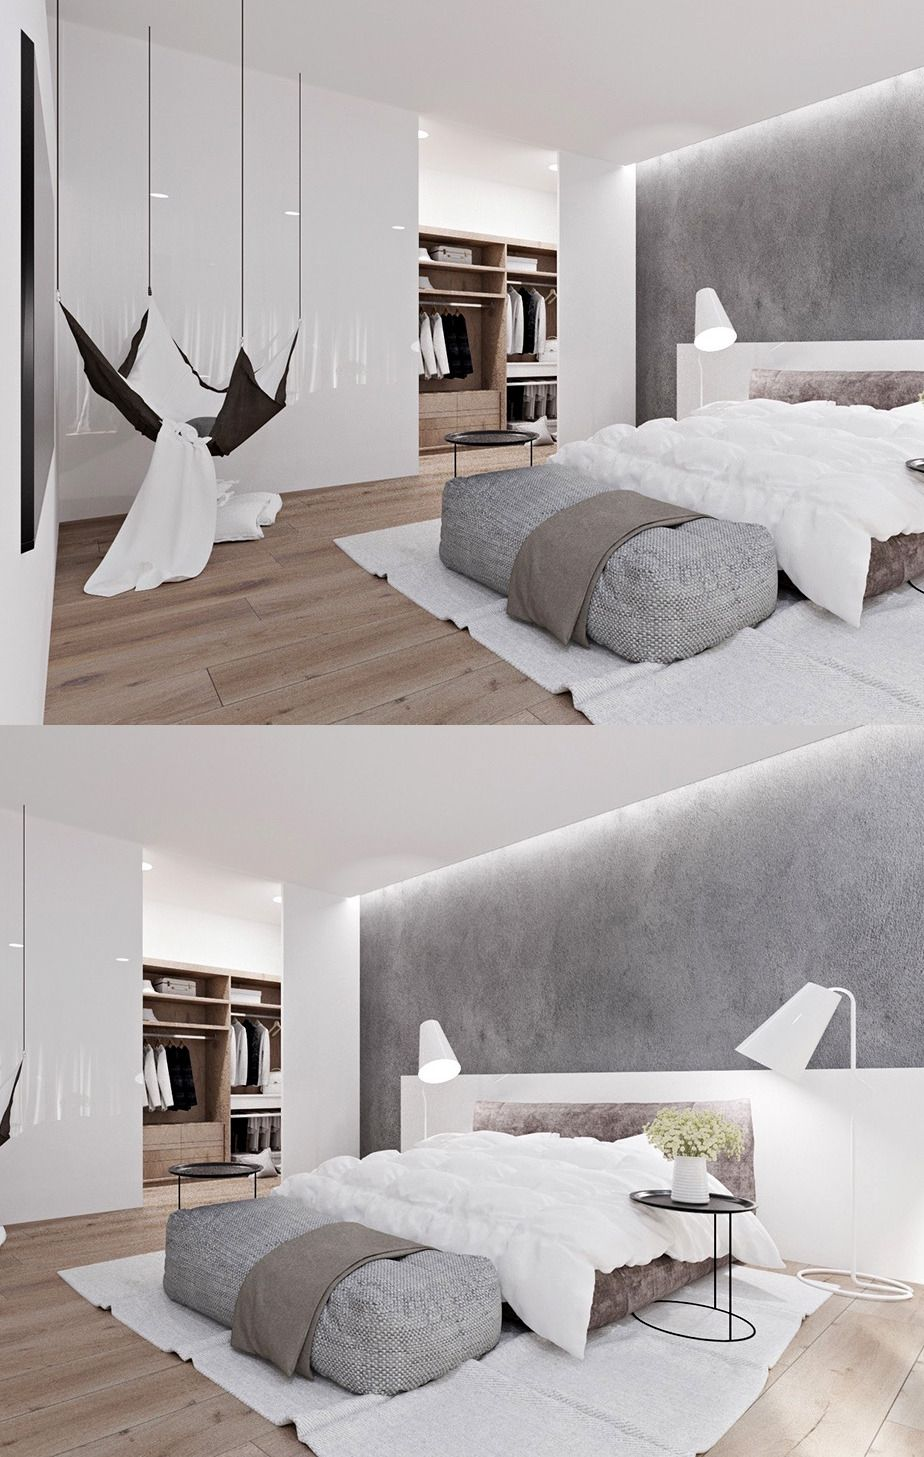 Professional Home Decor At Your Fingertips Our Ios App Is Now Available For Free On The App Luxurious Bedrooms Minimalist Bedroom Design Modern Bedroom Design